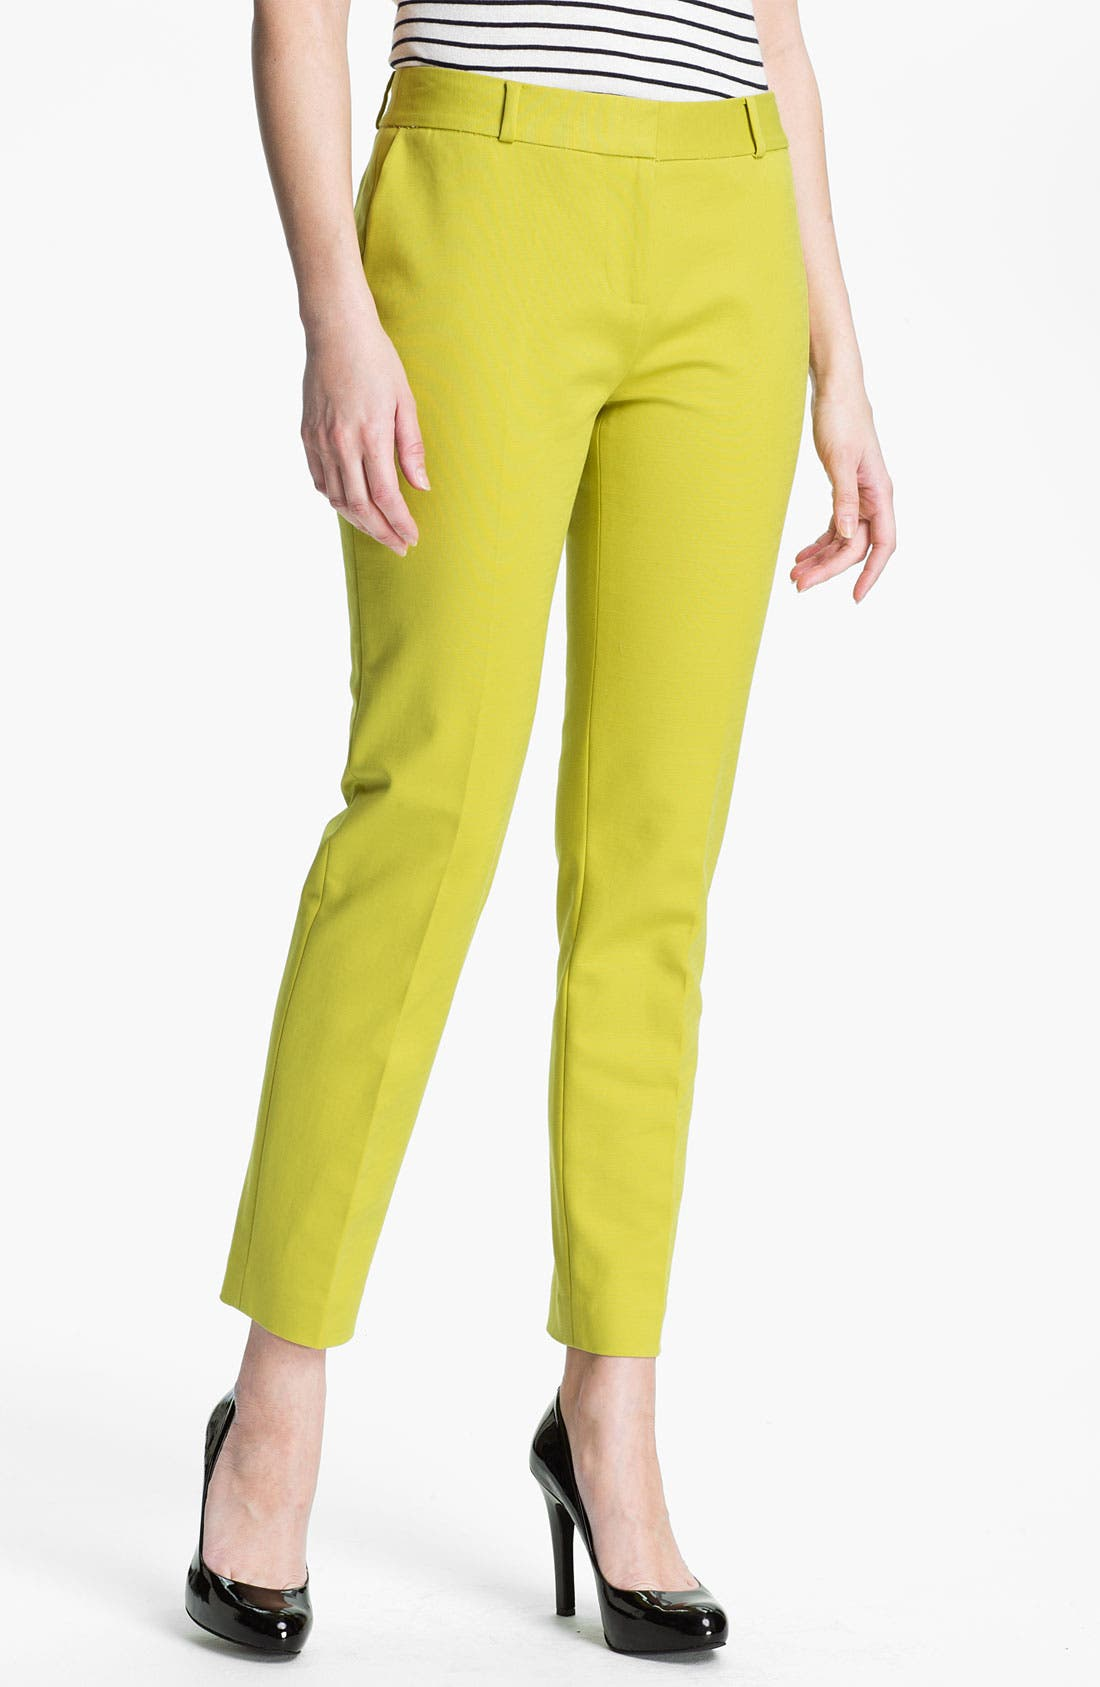 Alternate Image 1 Selected - kate spade new york 'davis' slim leg crop pants